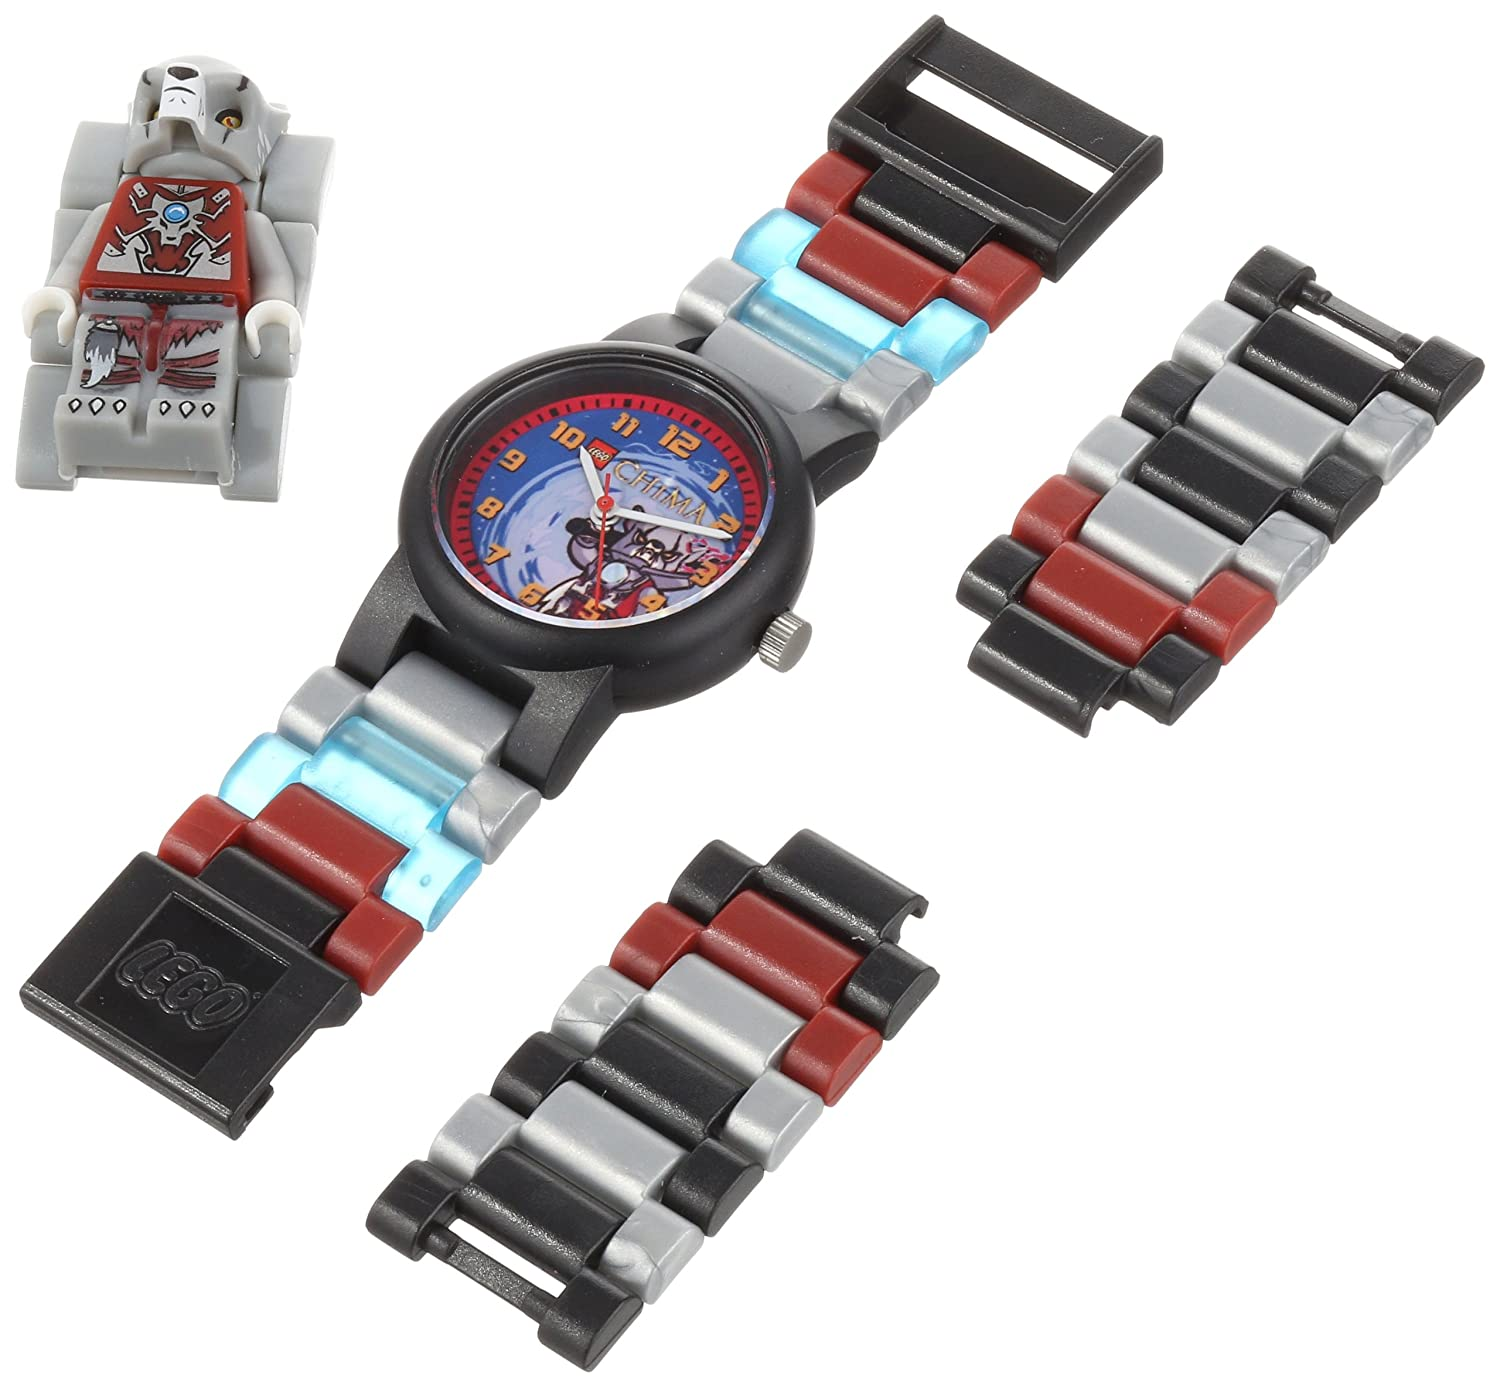 LEGO Kids' 9000423 Legends of Chima Worriz Plastic Watch with Link Bracelet and Figurine